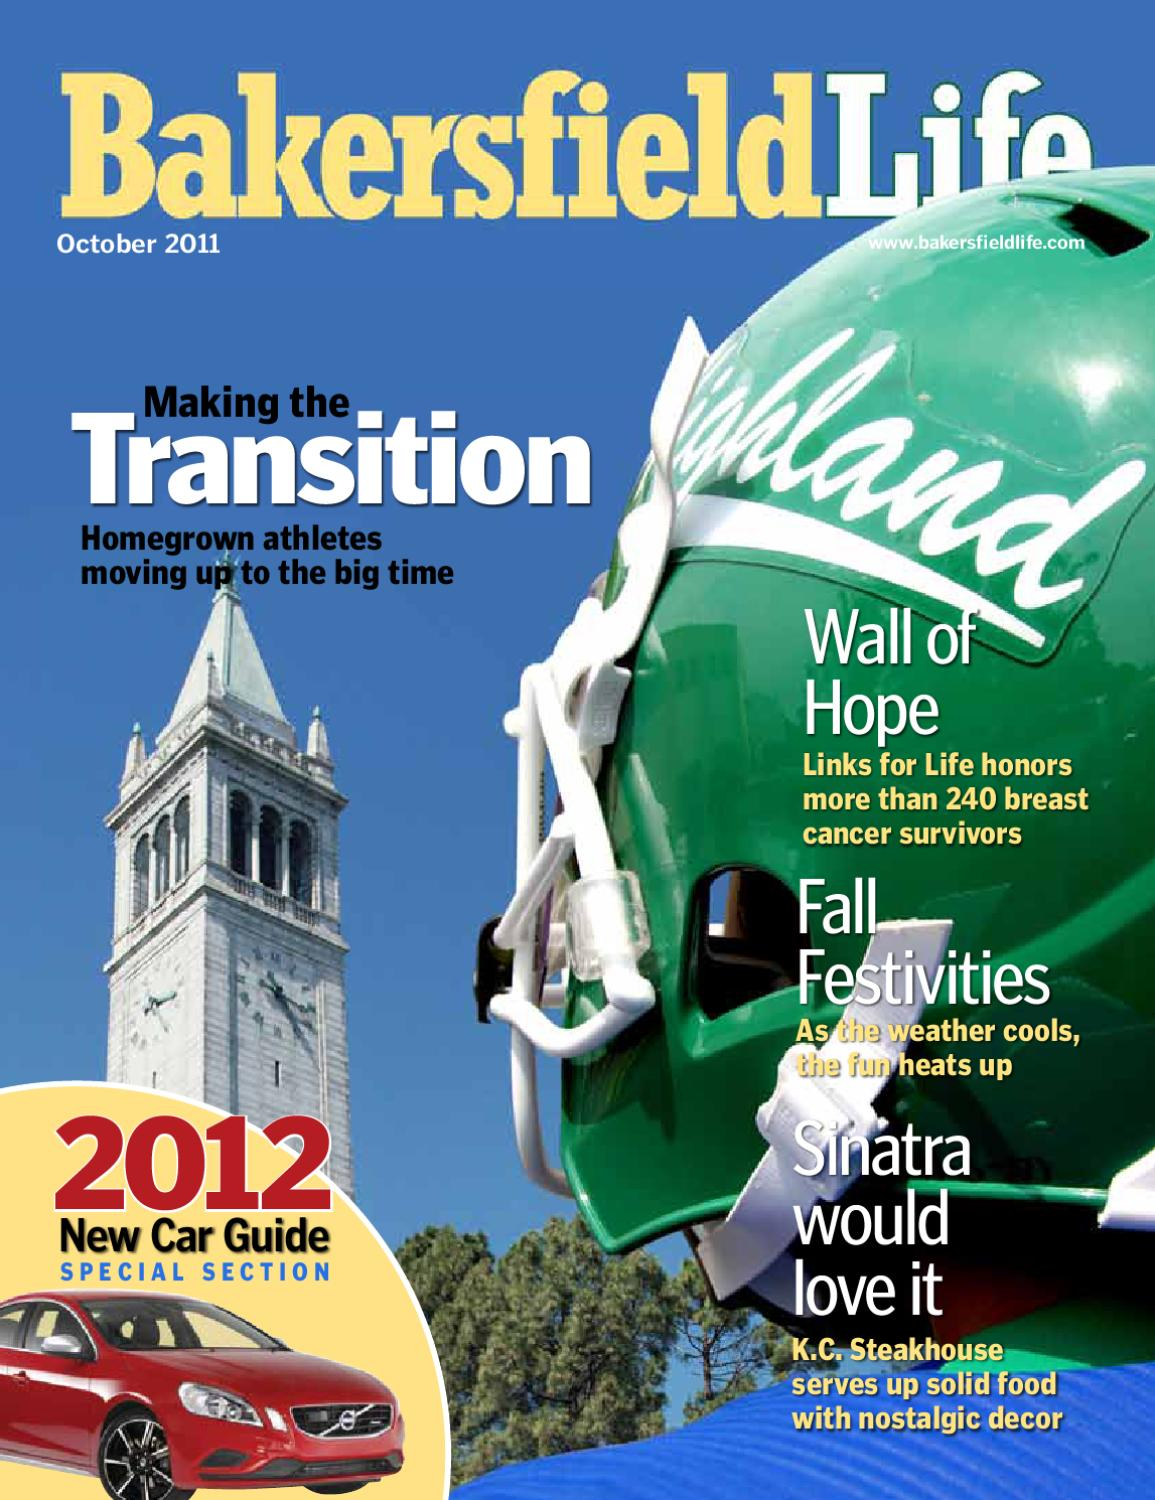 Bakersfield Life Magazine October 2011 By Tbc Media